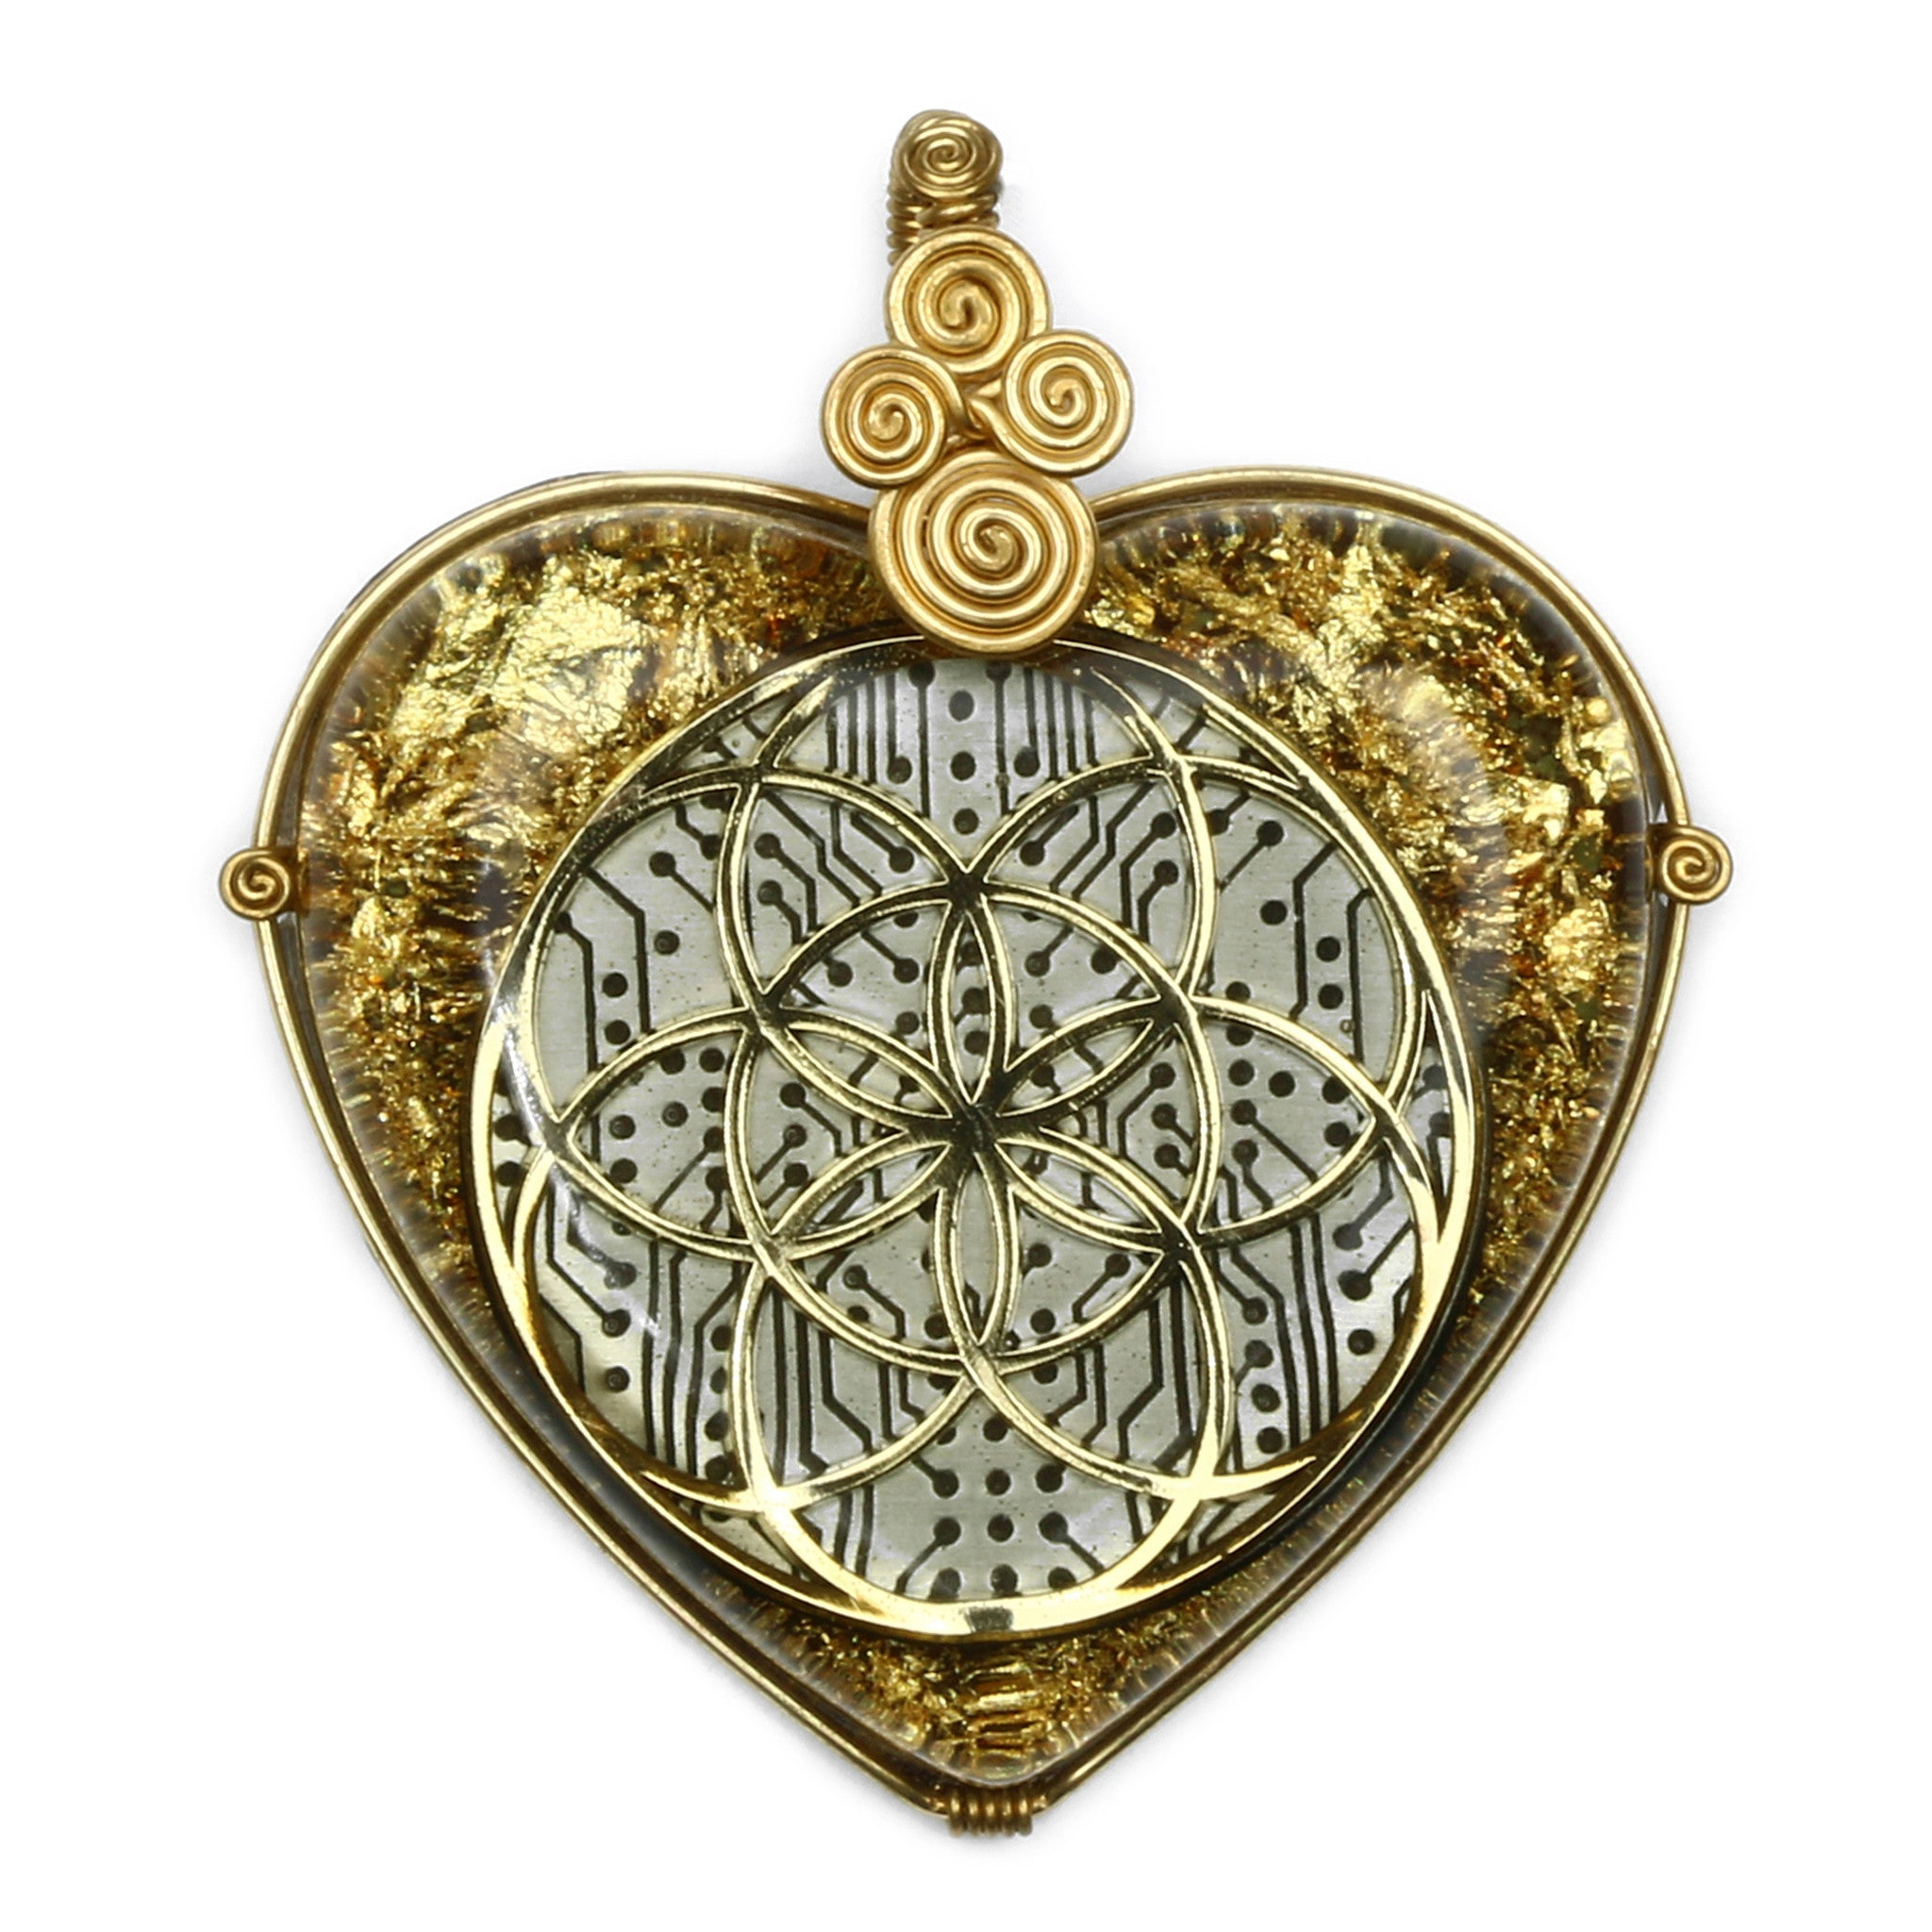 Seed of life orgonite pendant gold alternative intelligence seed of life orgonite pendant gold pendant alternative intelligence aiapparel aloadofball Images